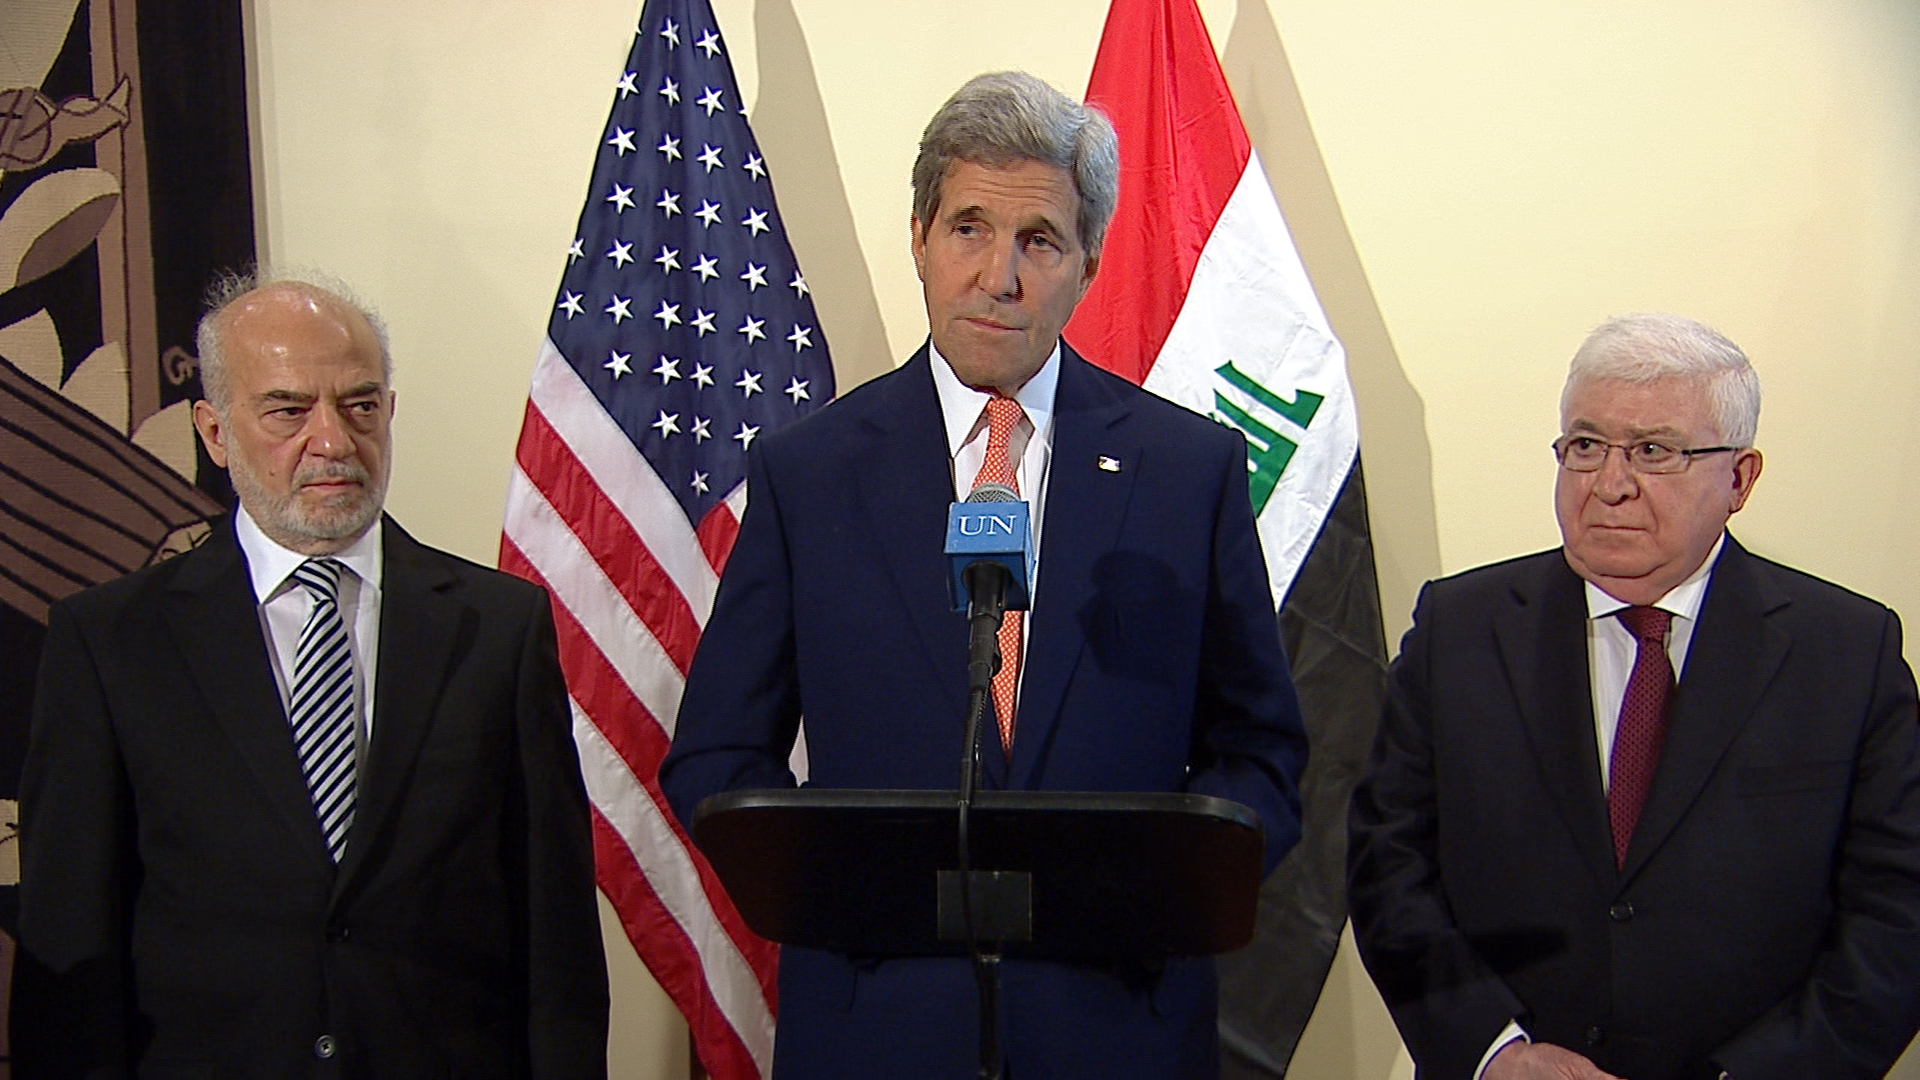 Selected frame from video story UN / KERRY IRAQ